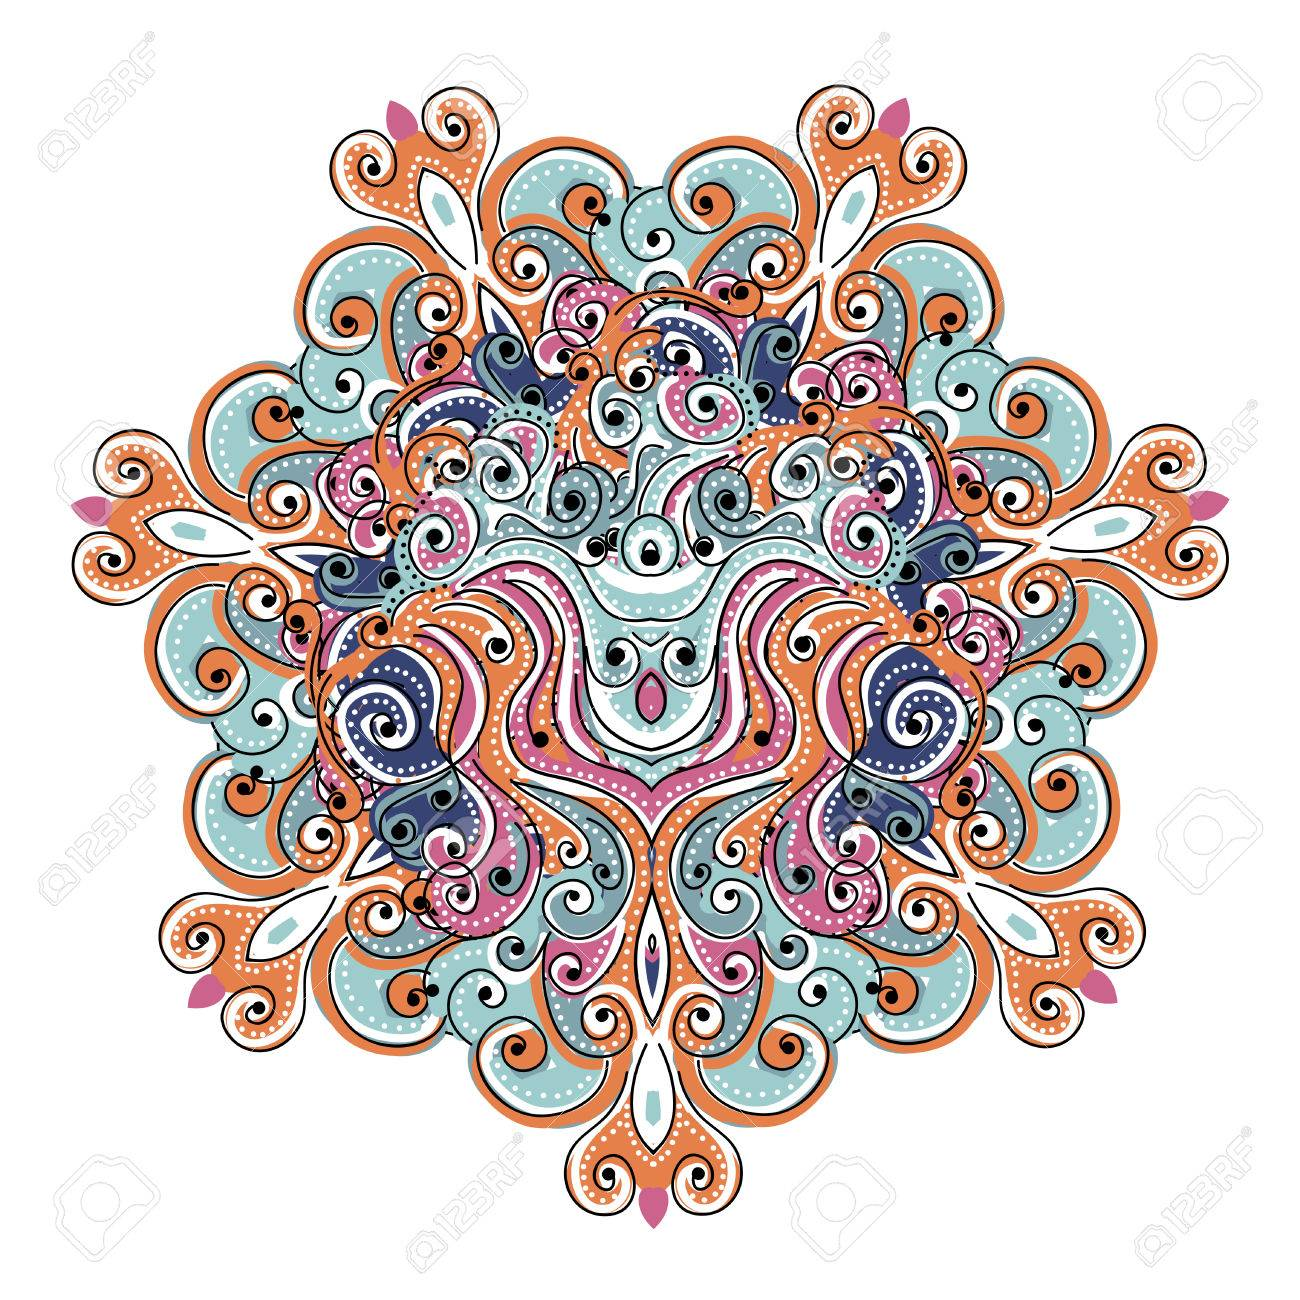 Colorful arabesque ornament for your design Stock Vector - 22697451